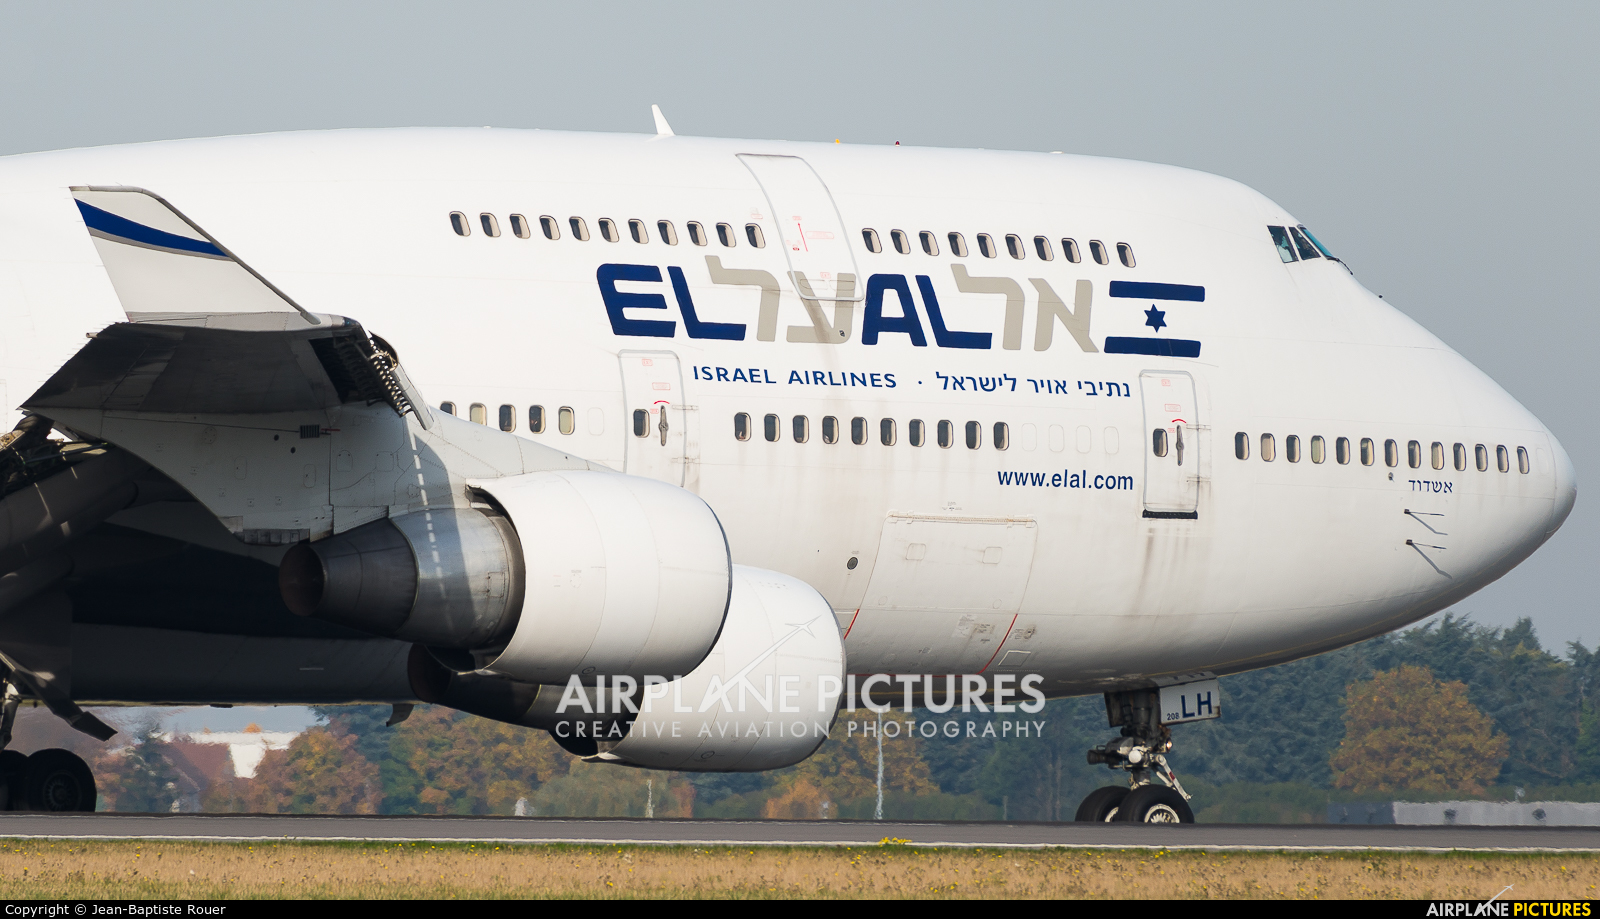 El Al Israel Airlines 4X-ELH aircraft at Paris - Charles de Gaulle